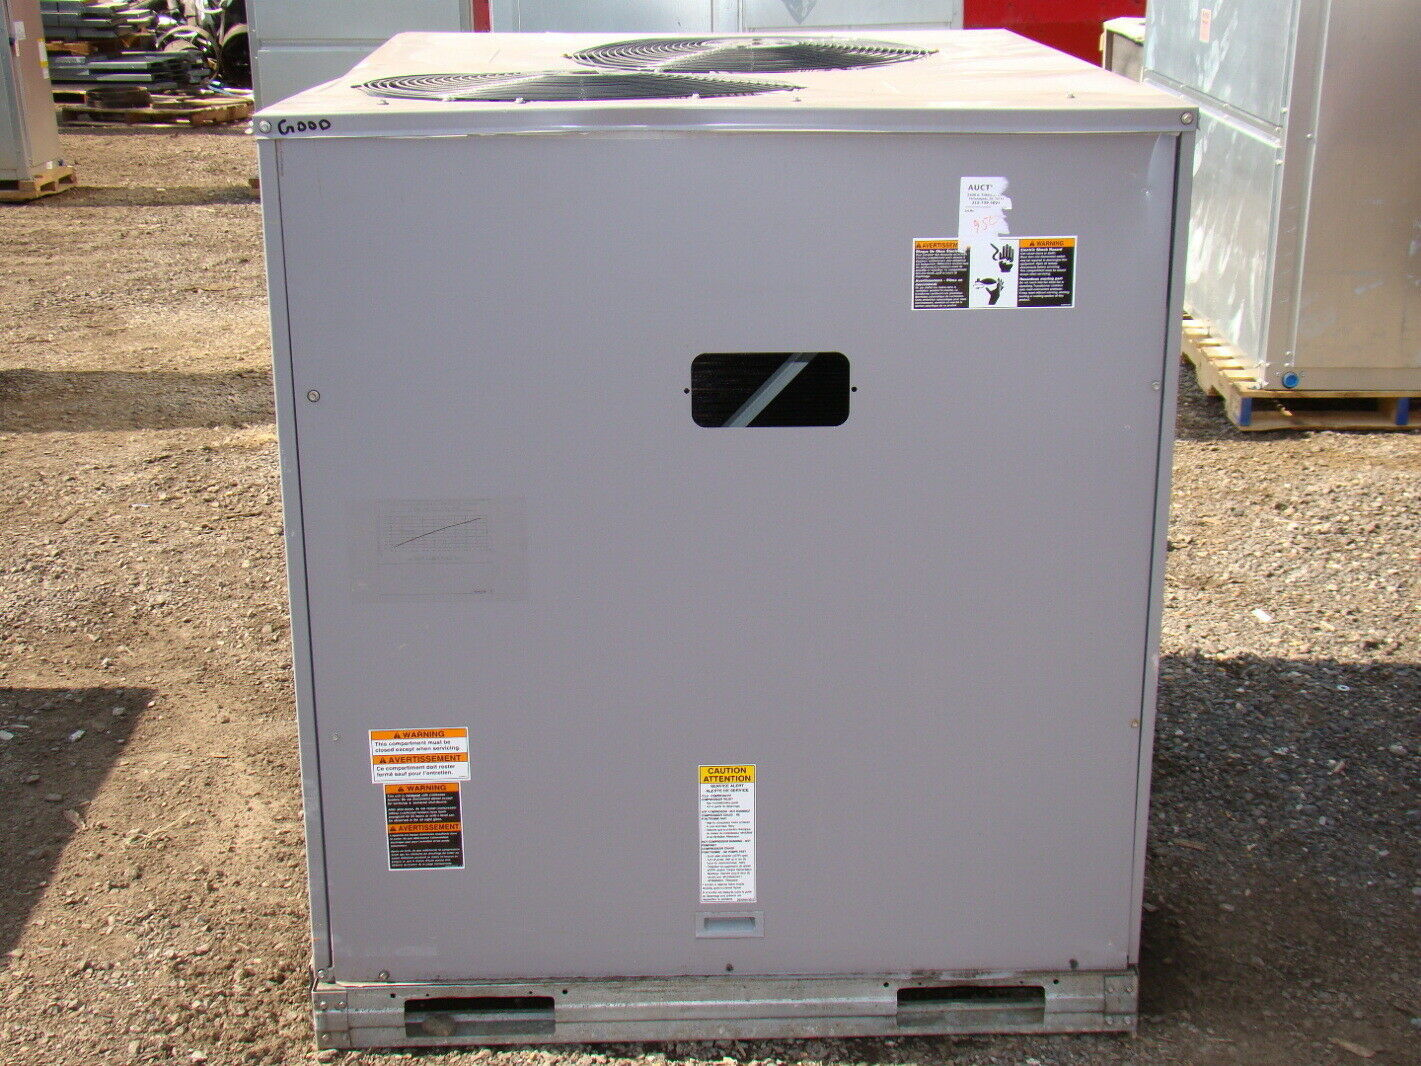 #857246 Carrier R 410A Puron Air Conditioning Unit EBay Best 1613 Carrier Brand Ac photos with 1421x1066 px on helpvideos.info - Air Conditioners, Air Coolers and more